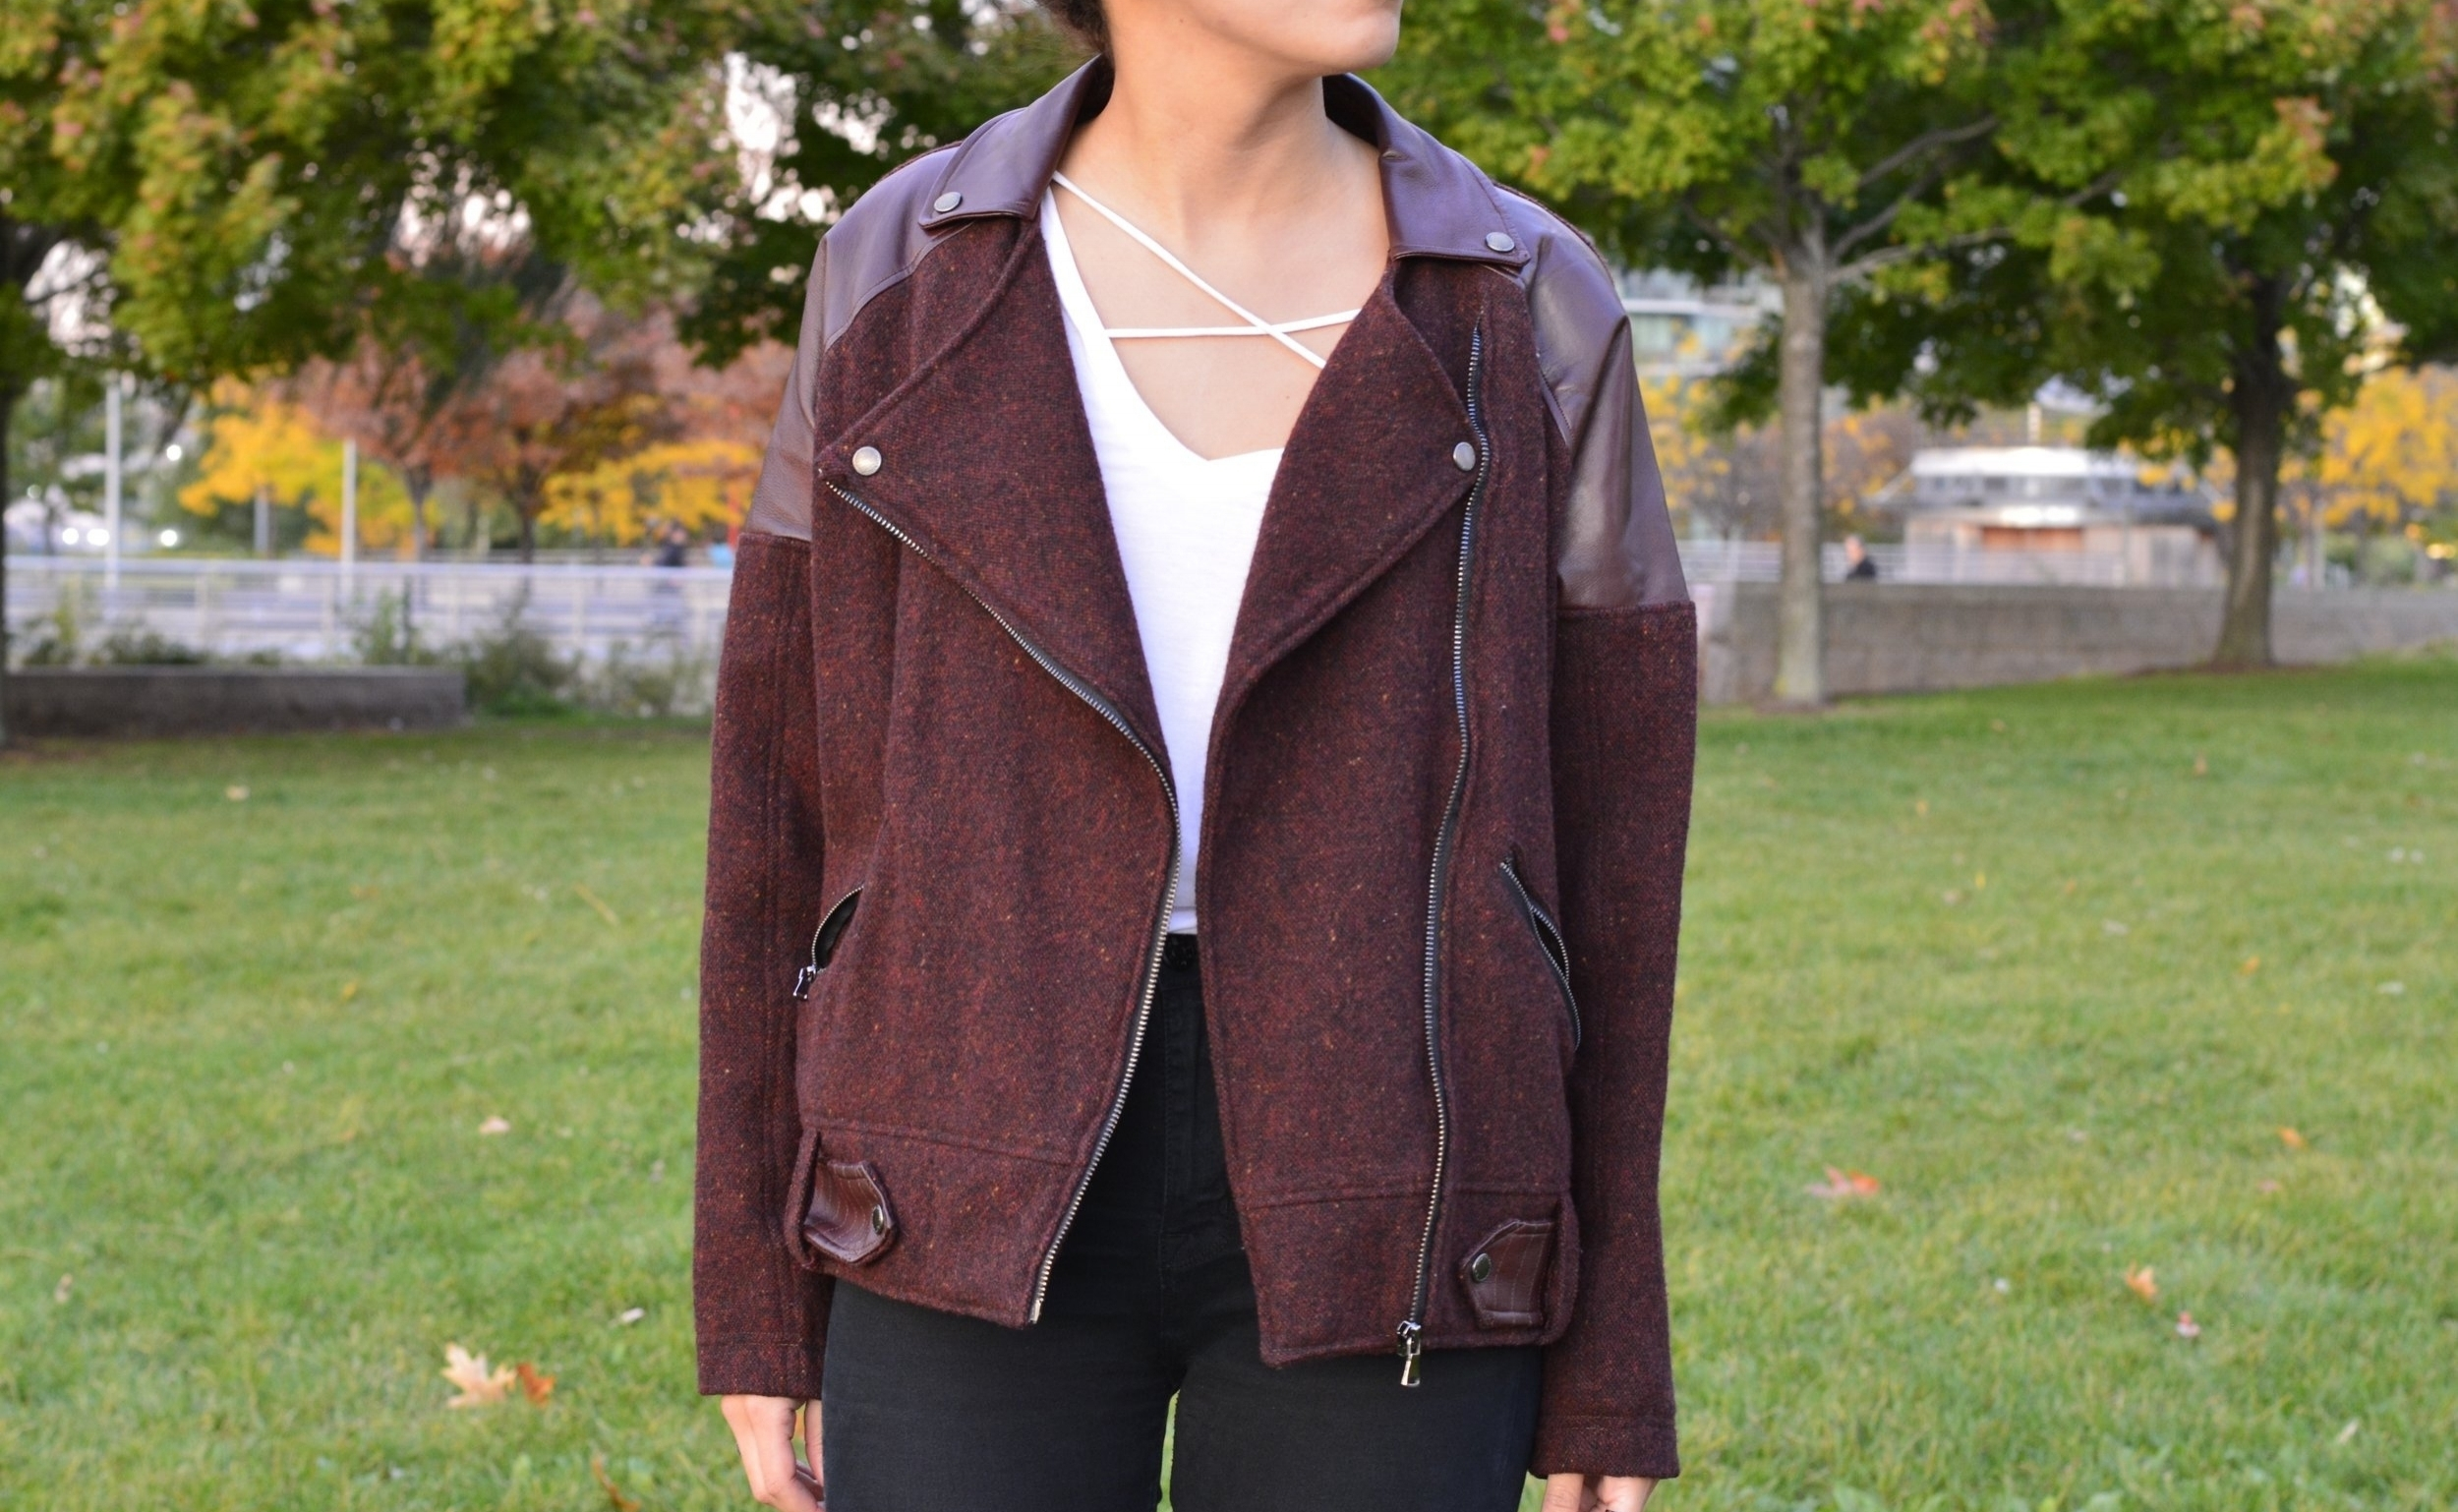 Wool Jacket - Made with wool and lambskin accents